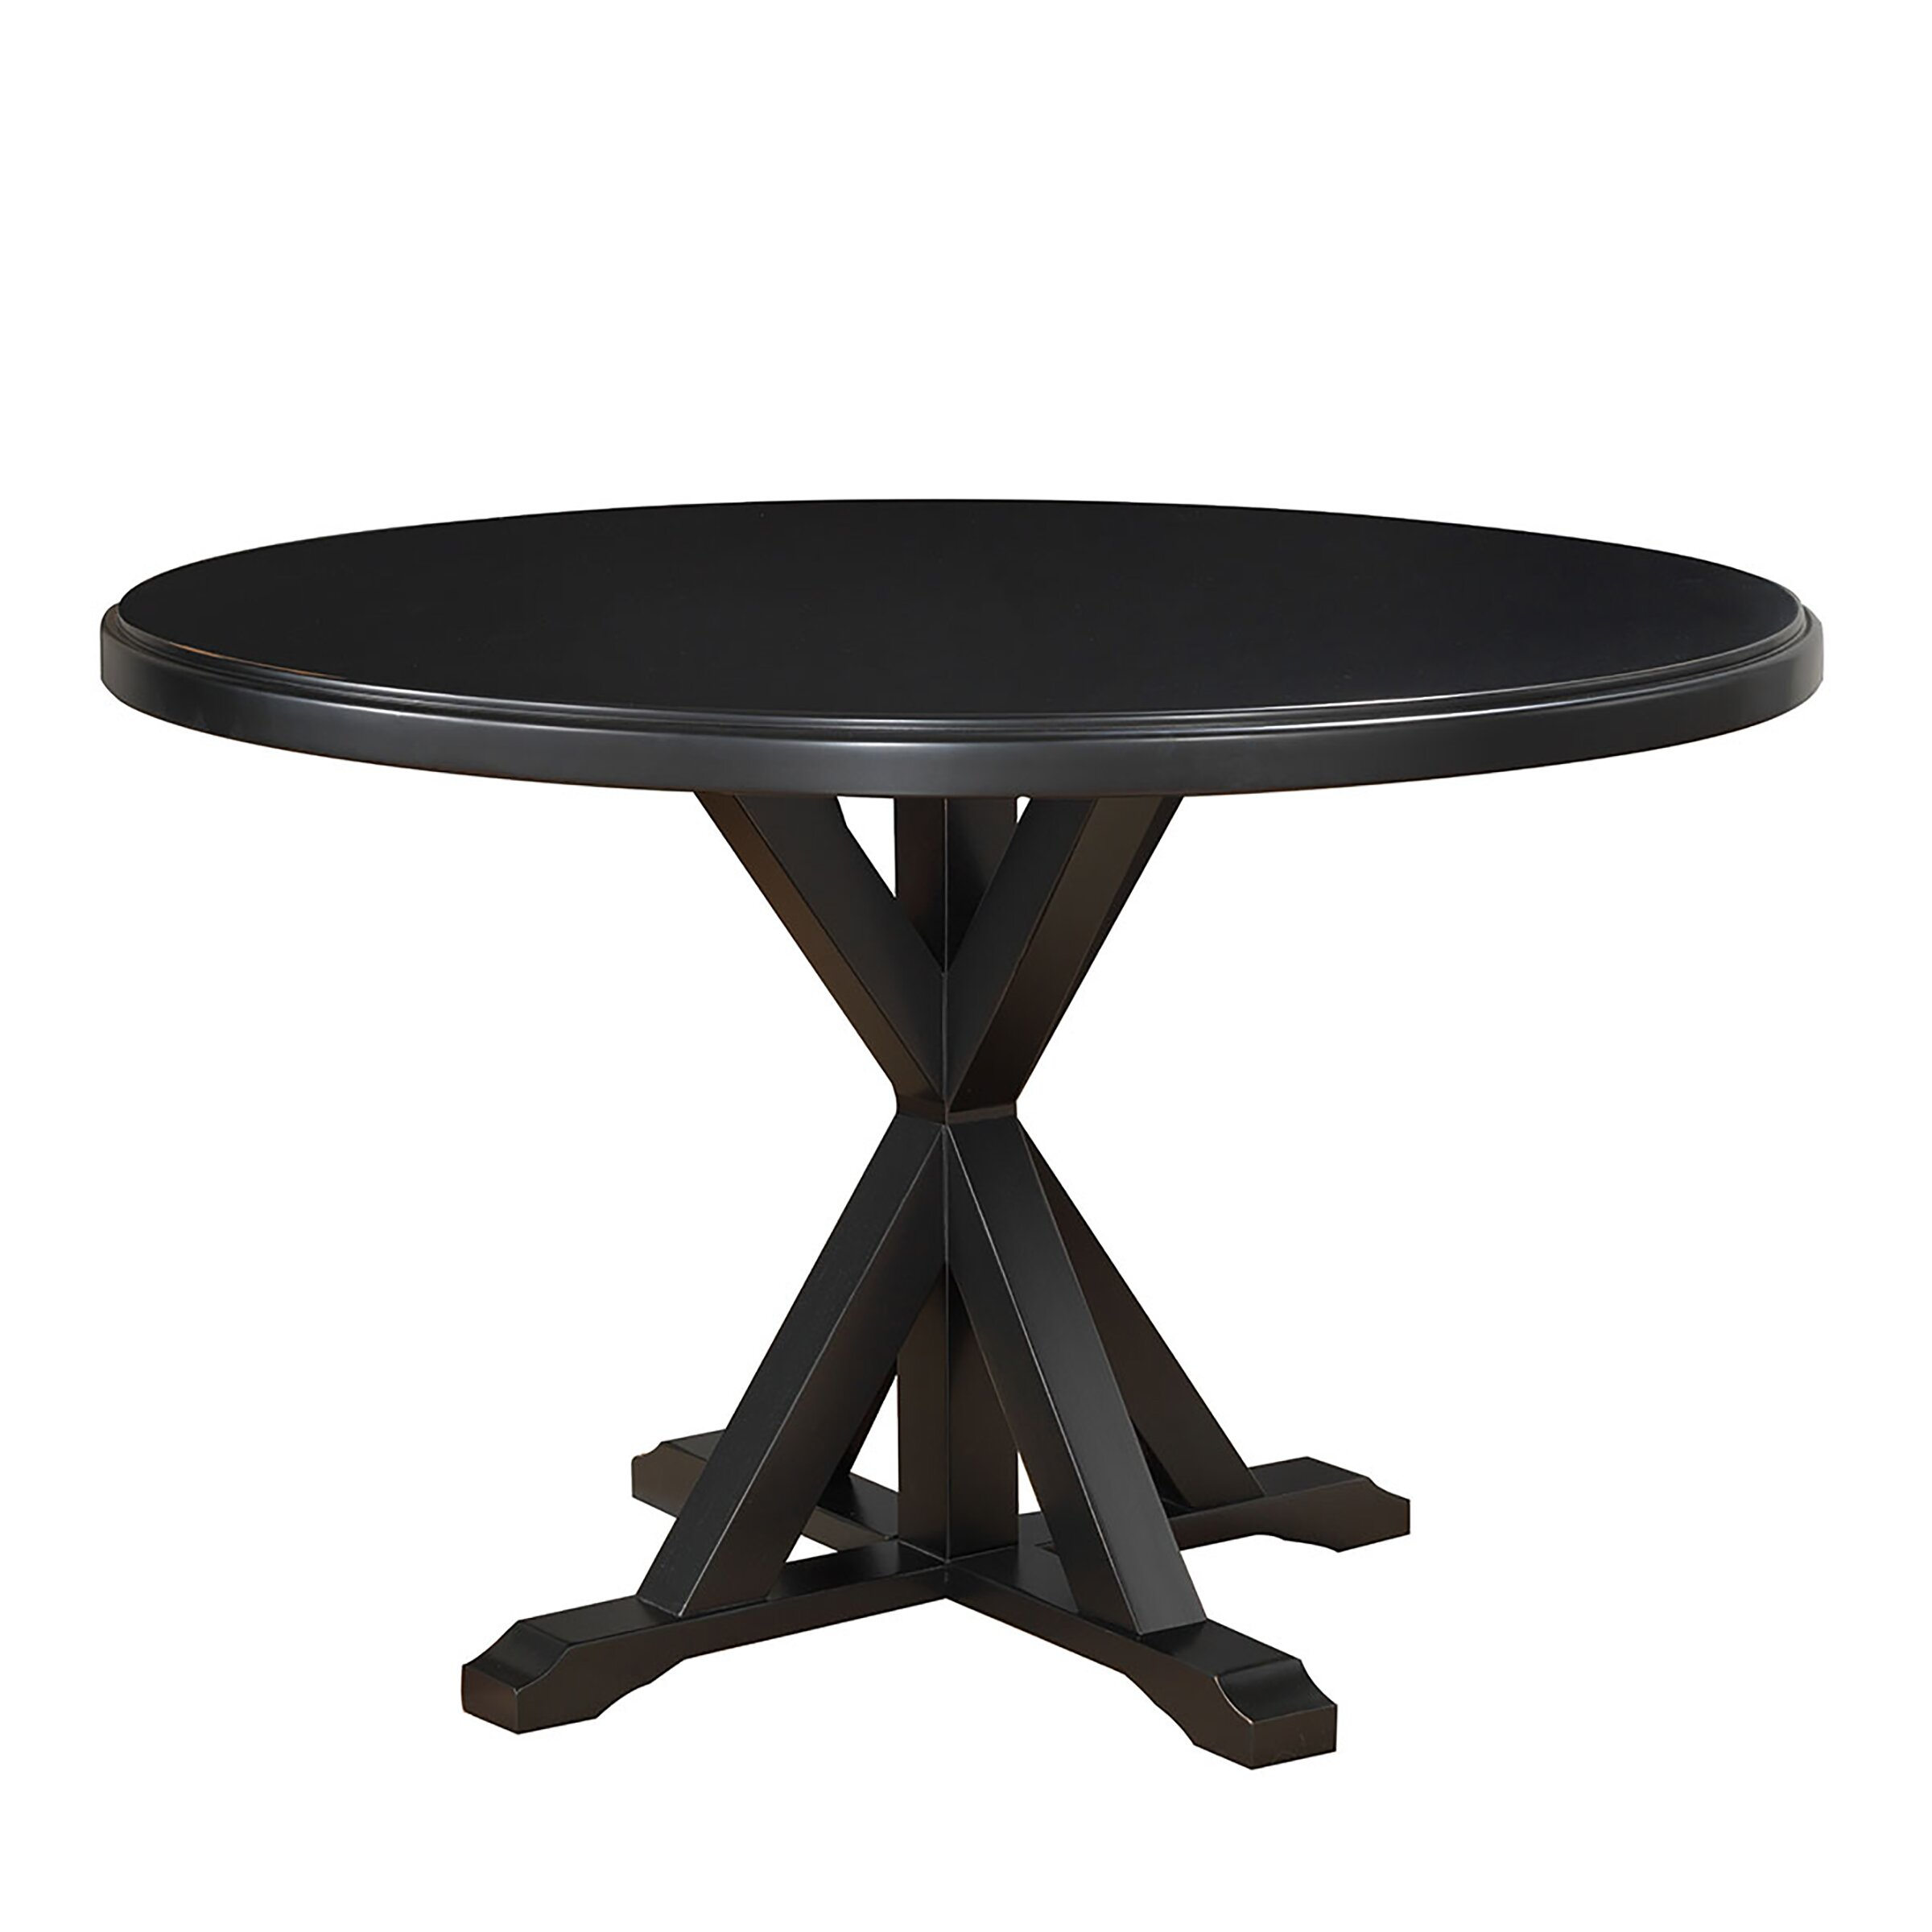 Alcott hill fanning x base dining table reviews wayfair for Table x reviews